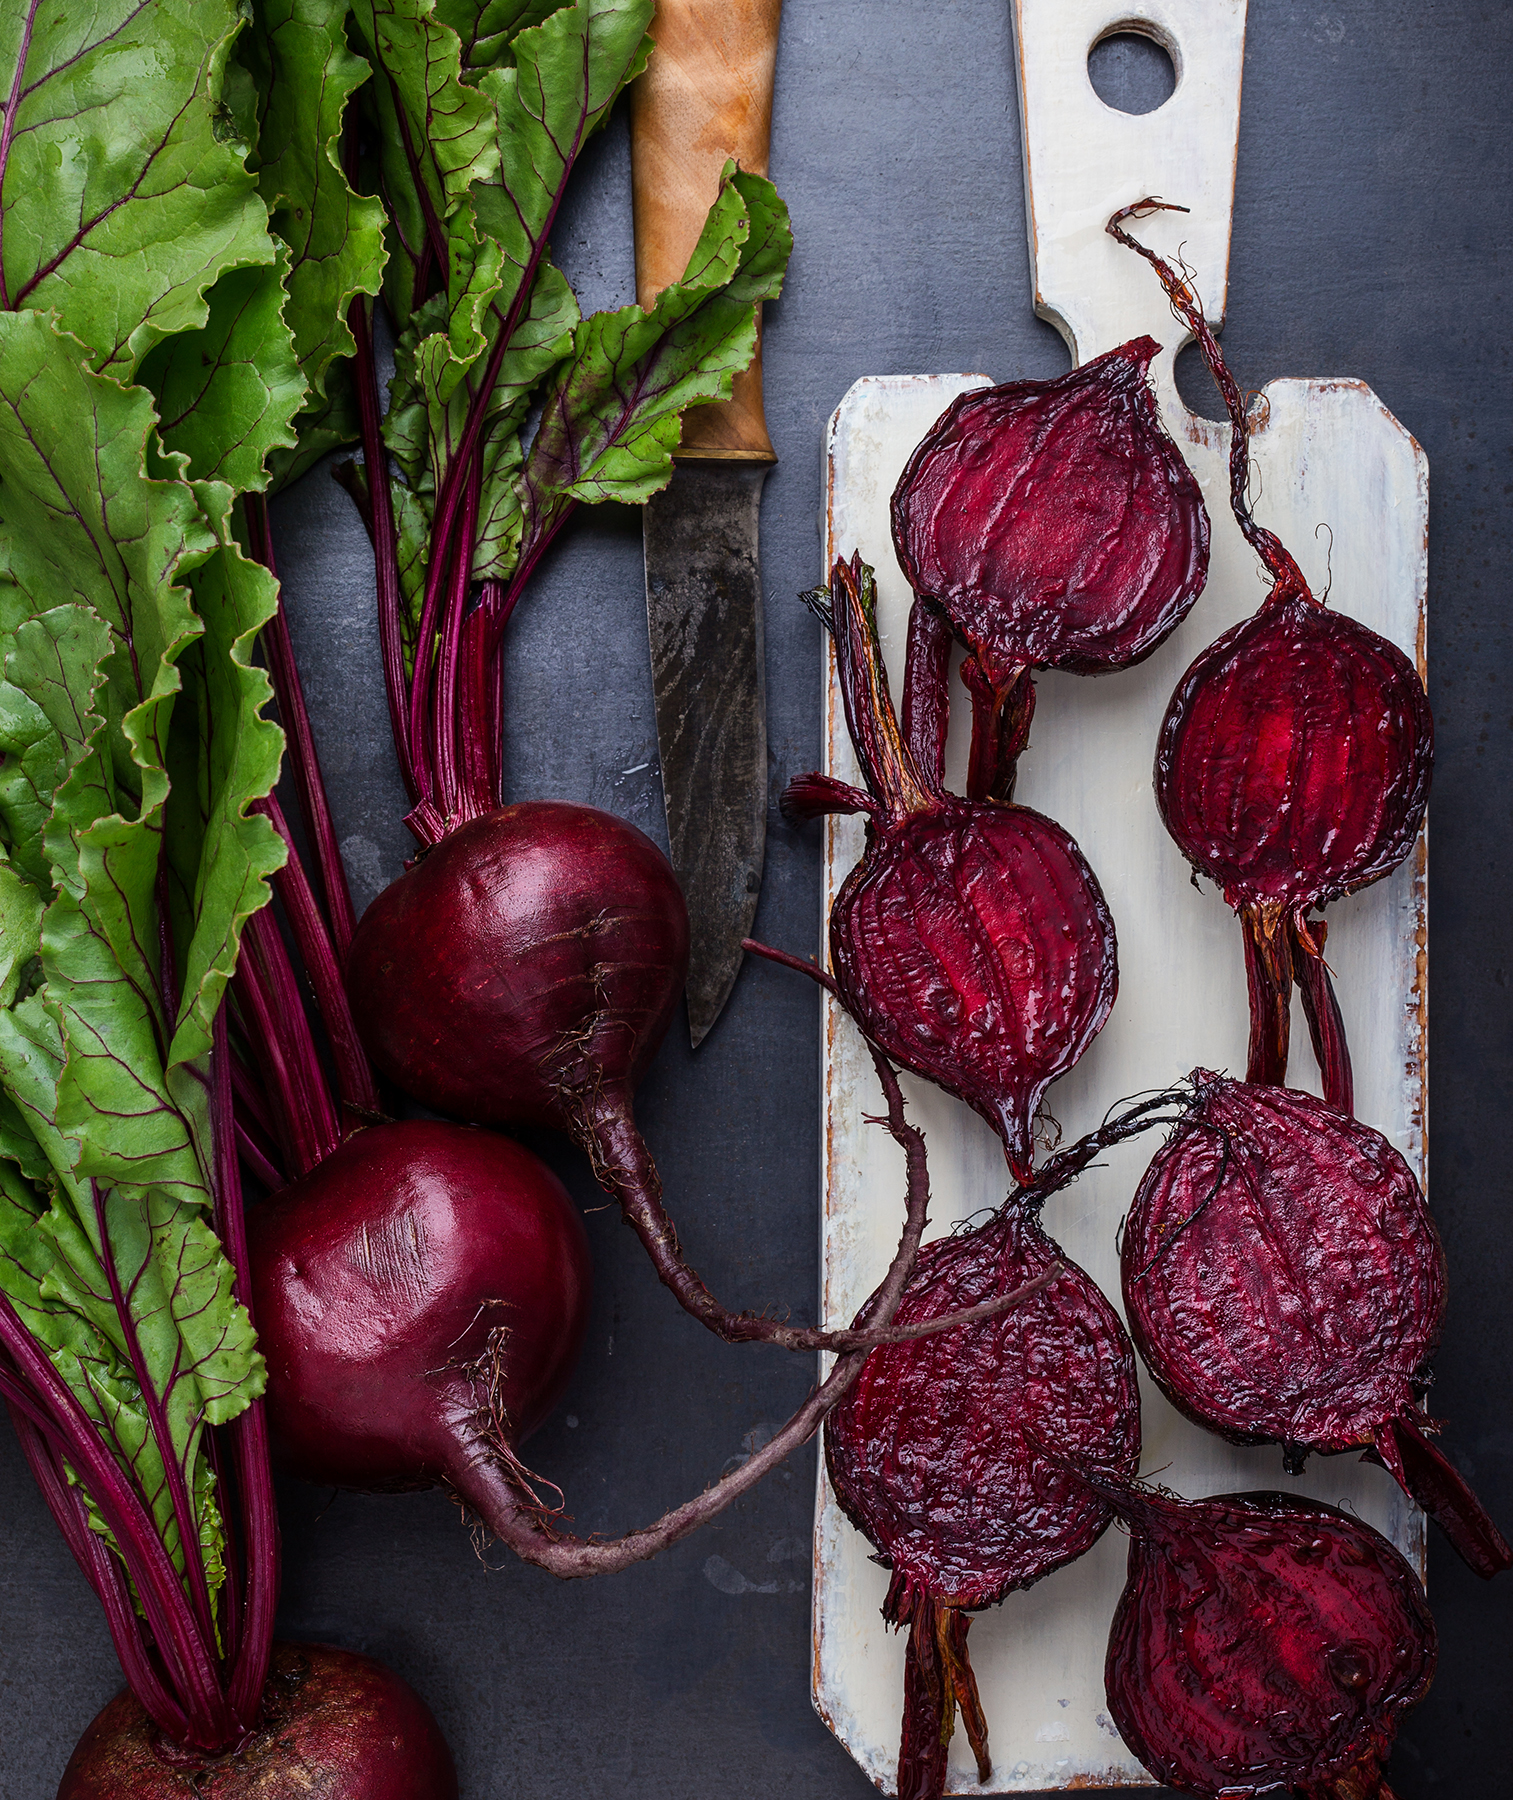 How to Cook Beets: Easy Step-by-Step Guides